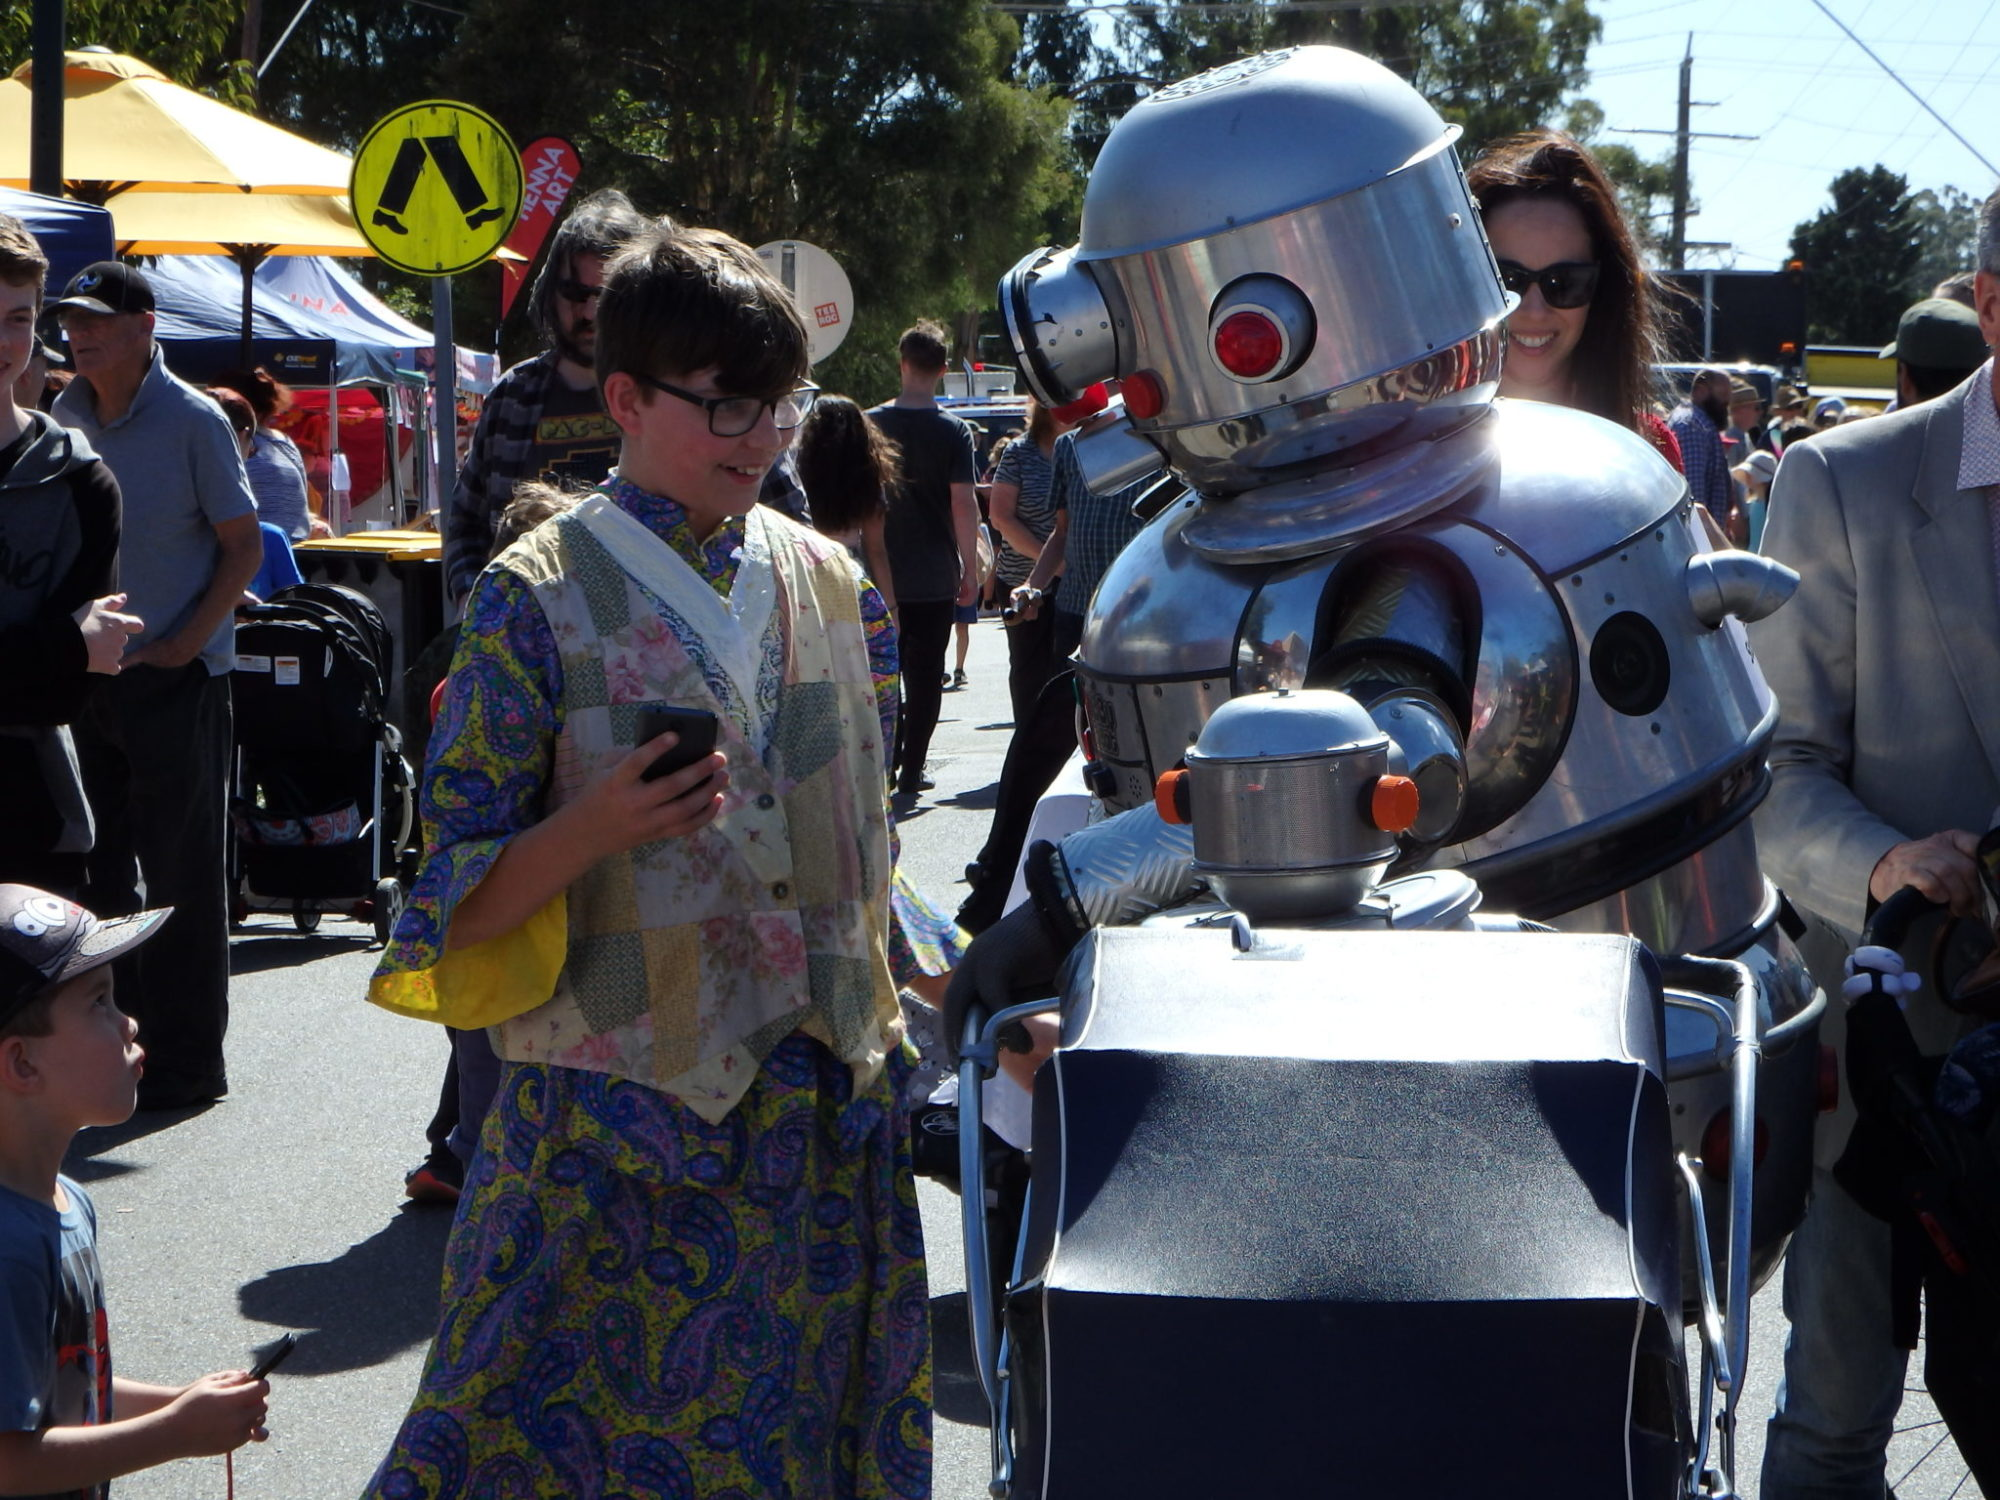 Tubby the robot with Baby Robot